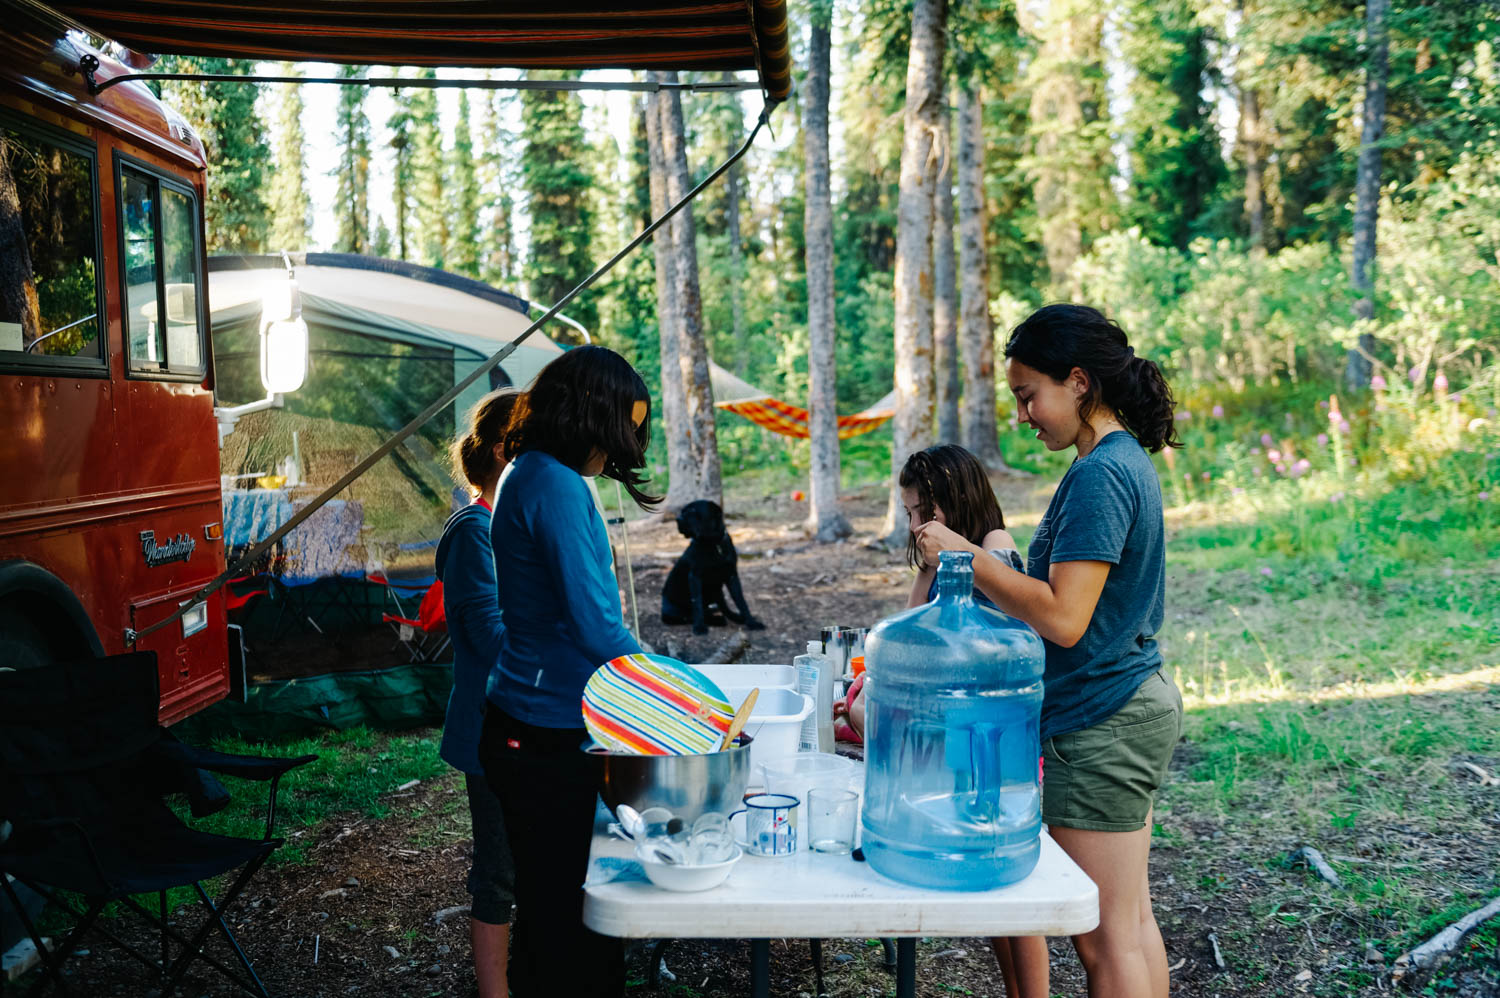 Our friends were traveling up the Cassiar and we met at Morchuea Lake for a night. Here, the girls were doing the dishes together.